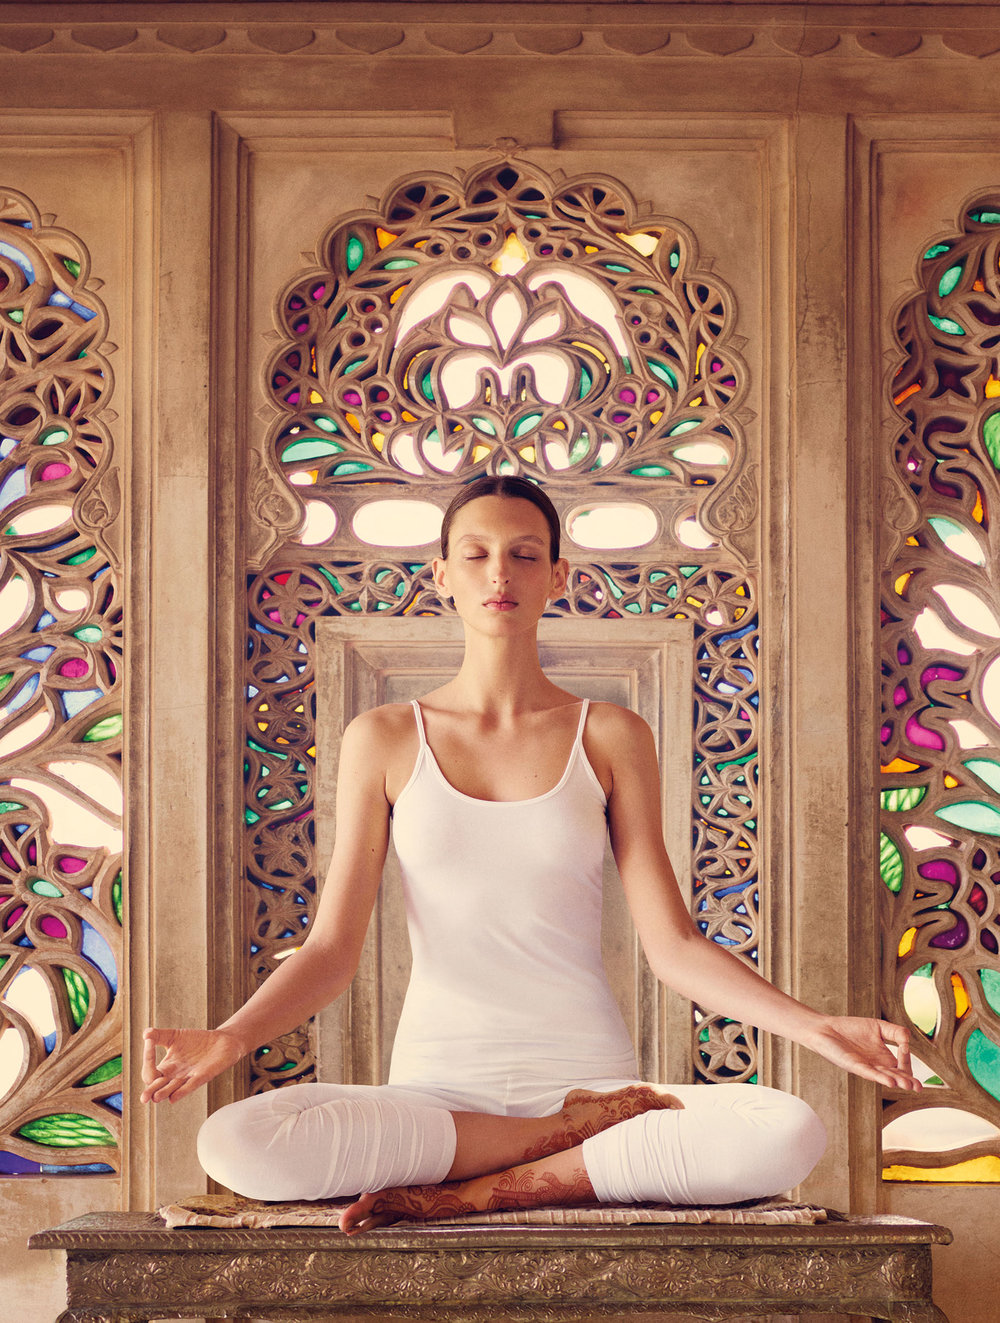 - Aveda's roots are planted in Ayurveda, the ancient east-Indian art of healing, which takes a holistic approach to life and wellness, with a focus on cultivating balance.